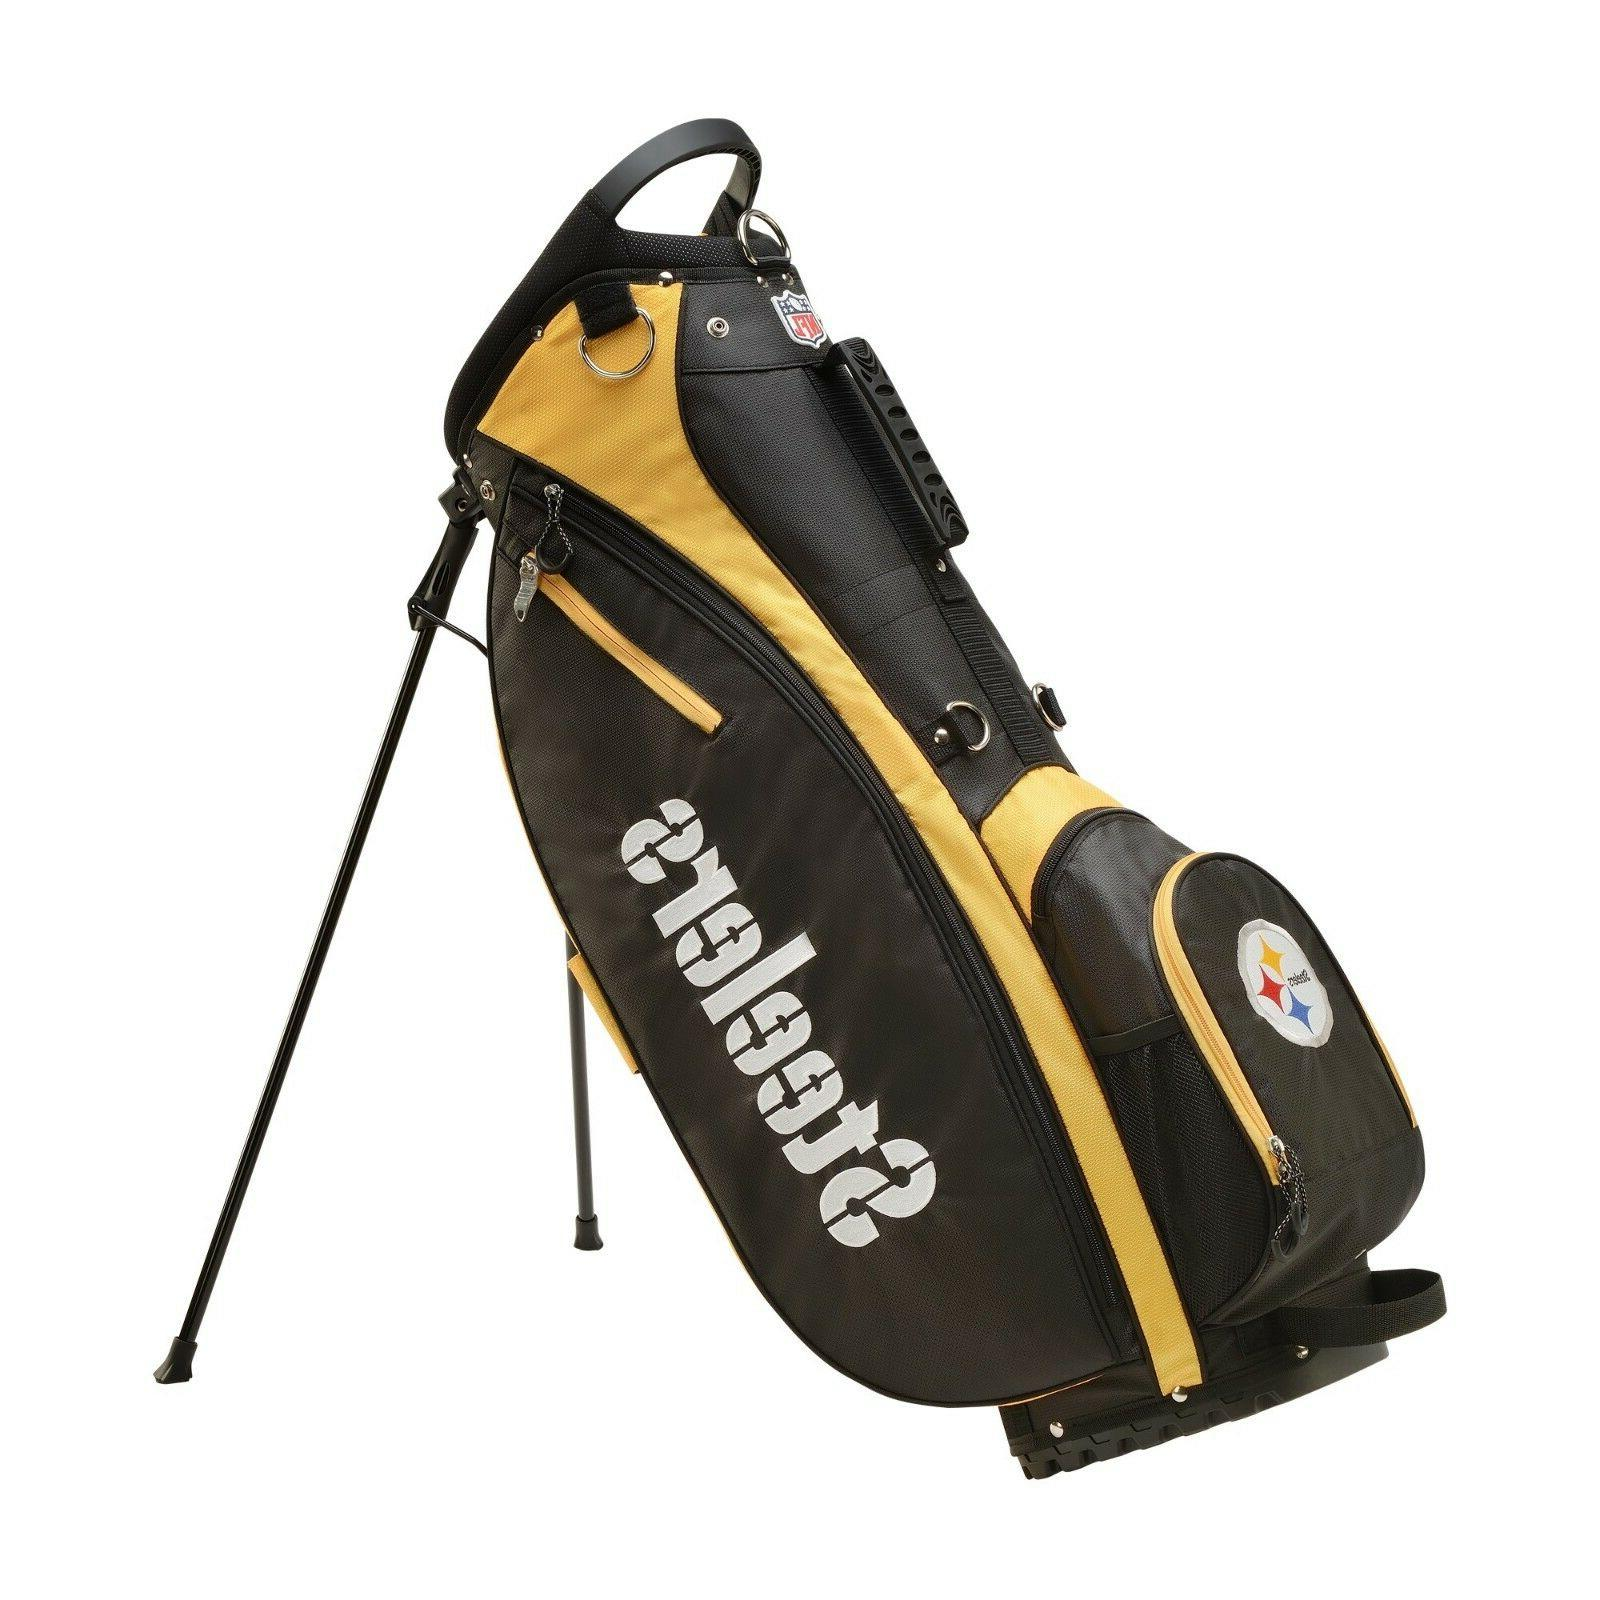 new nfl carry golf bag pittsburgh steelers